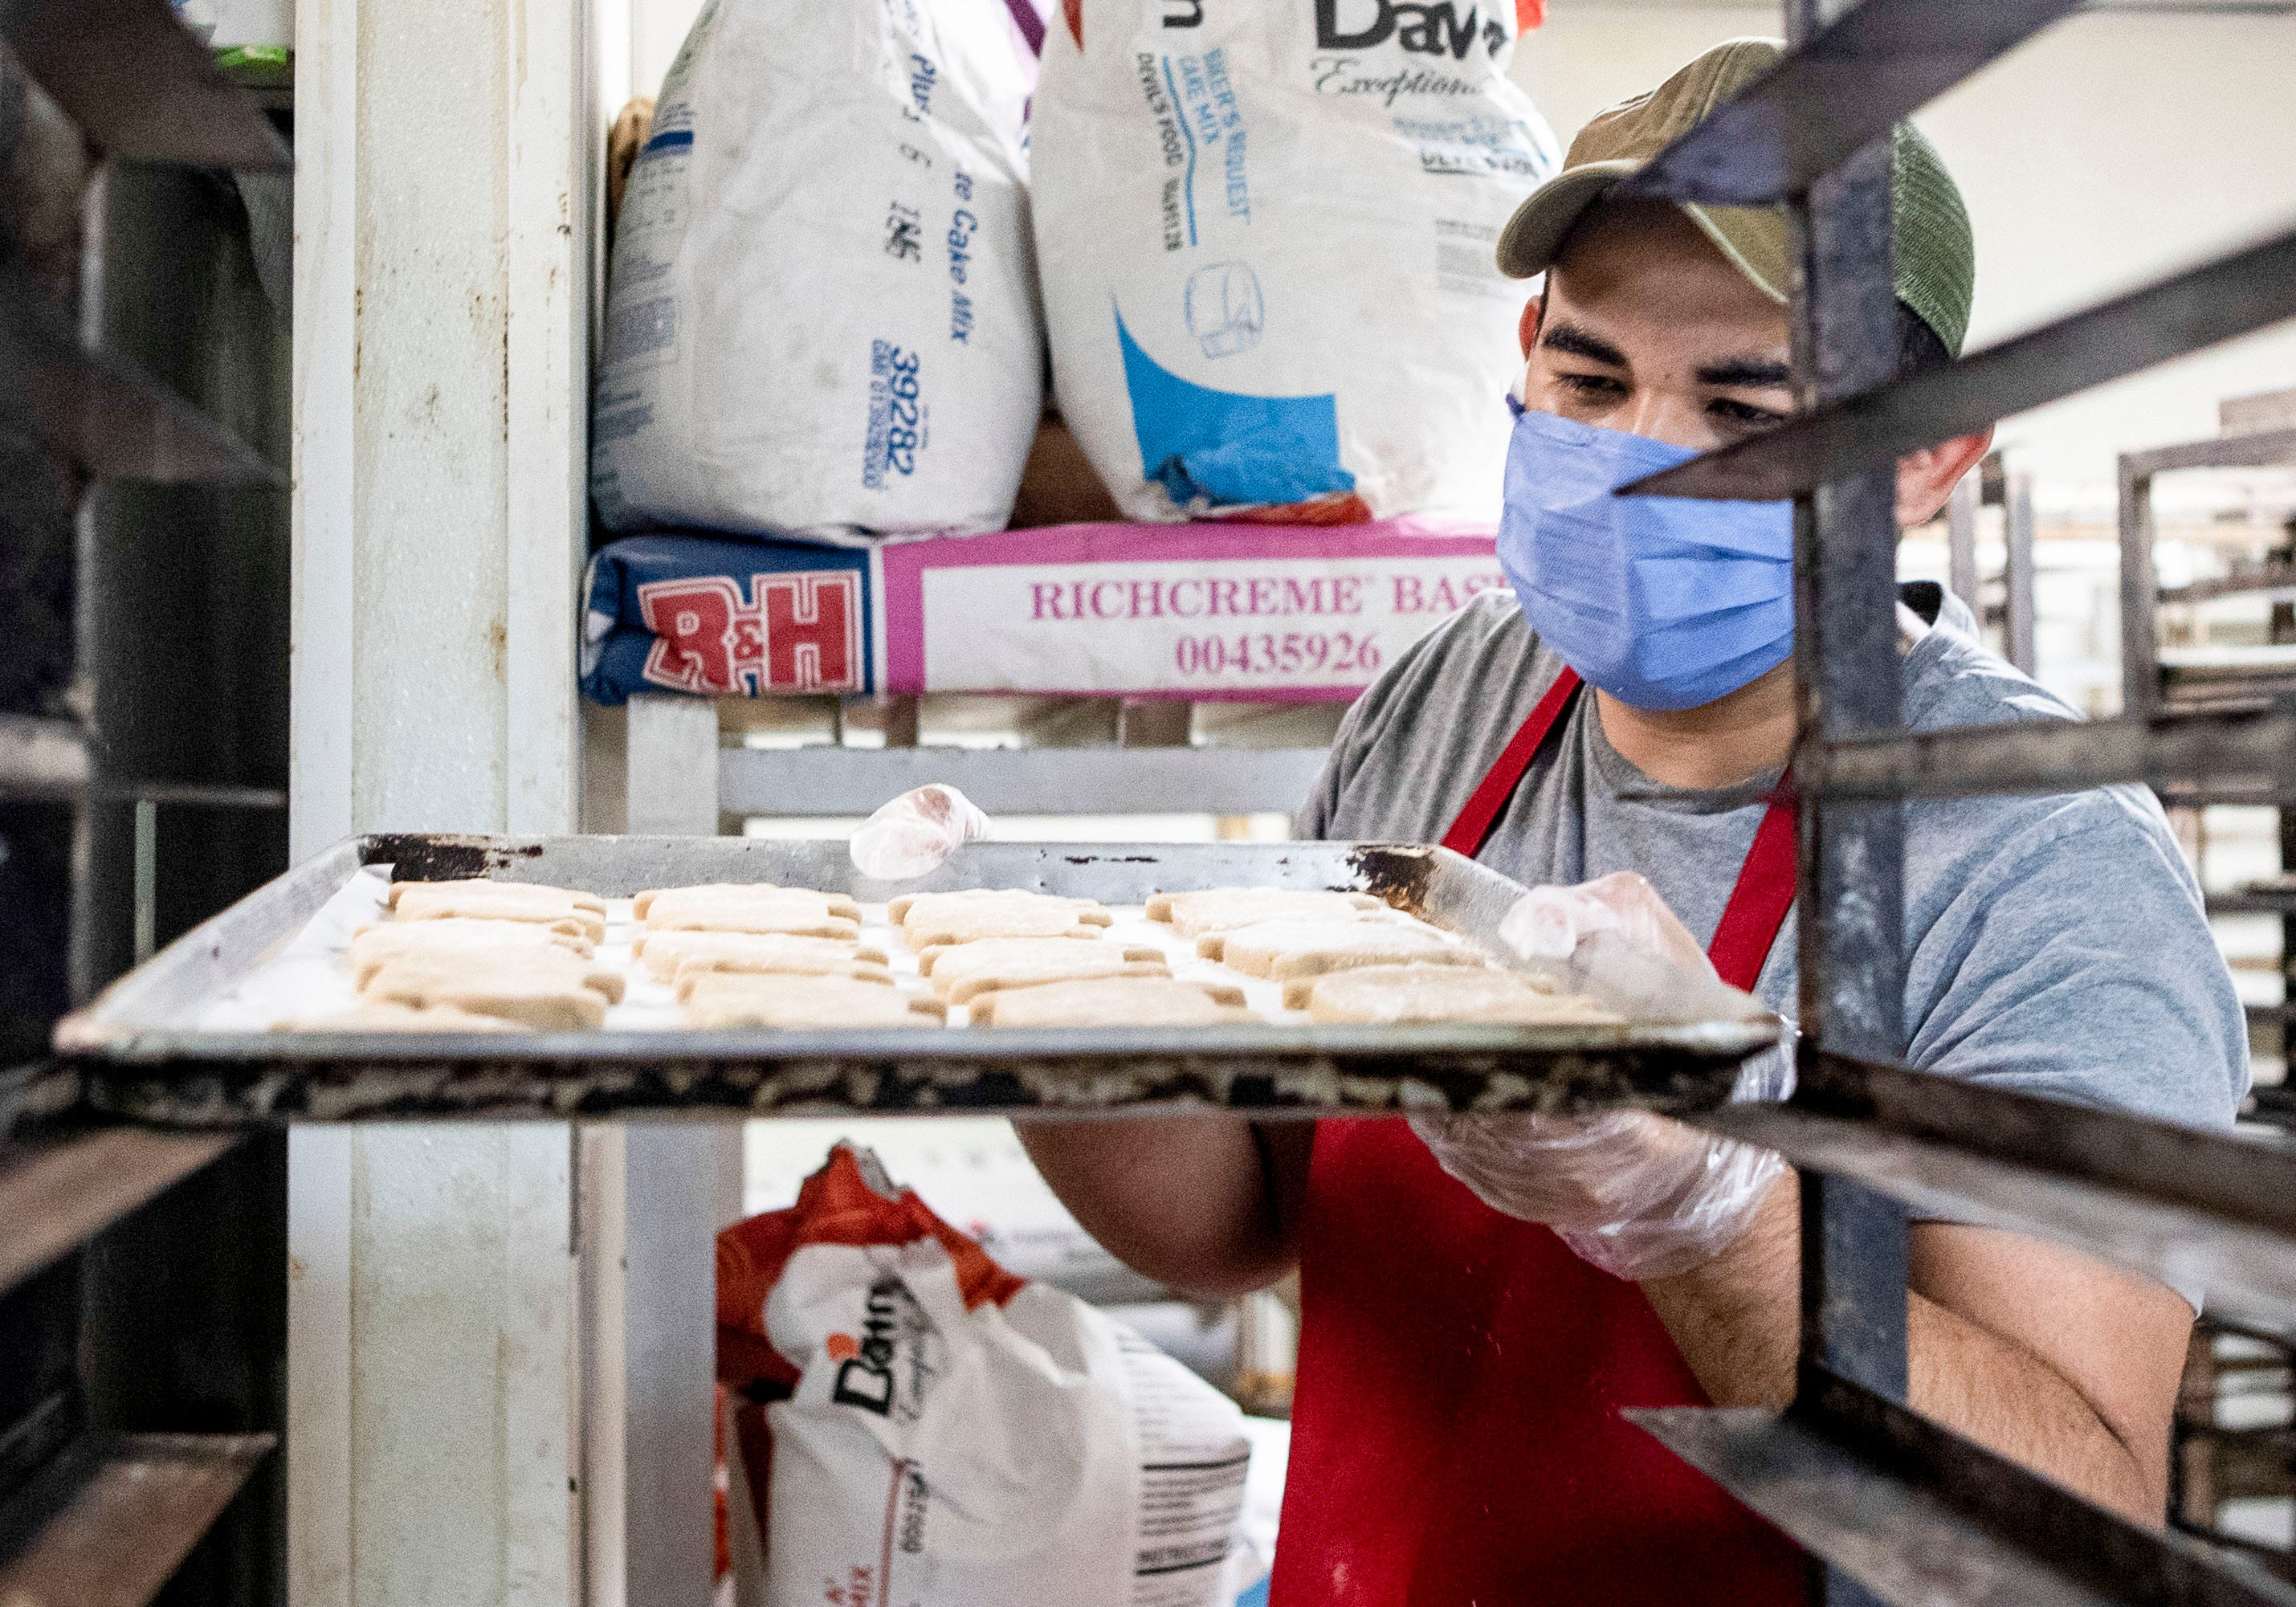 Itiel Perez places a tray of puerquitos on a transport trolley in the kitchen at Caminos de Michoacan in Memphis, Tenn., on Tuesday, September 1, 2020.